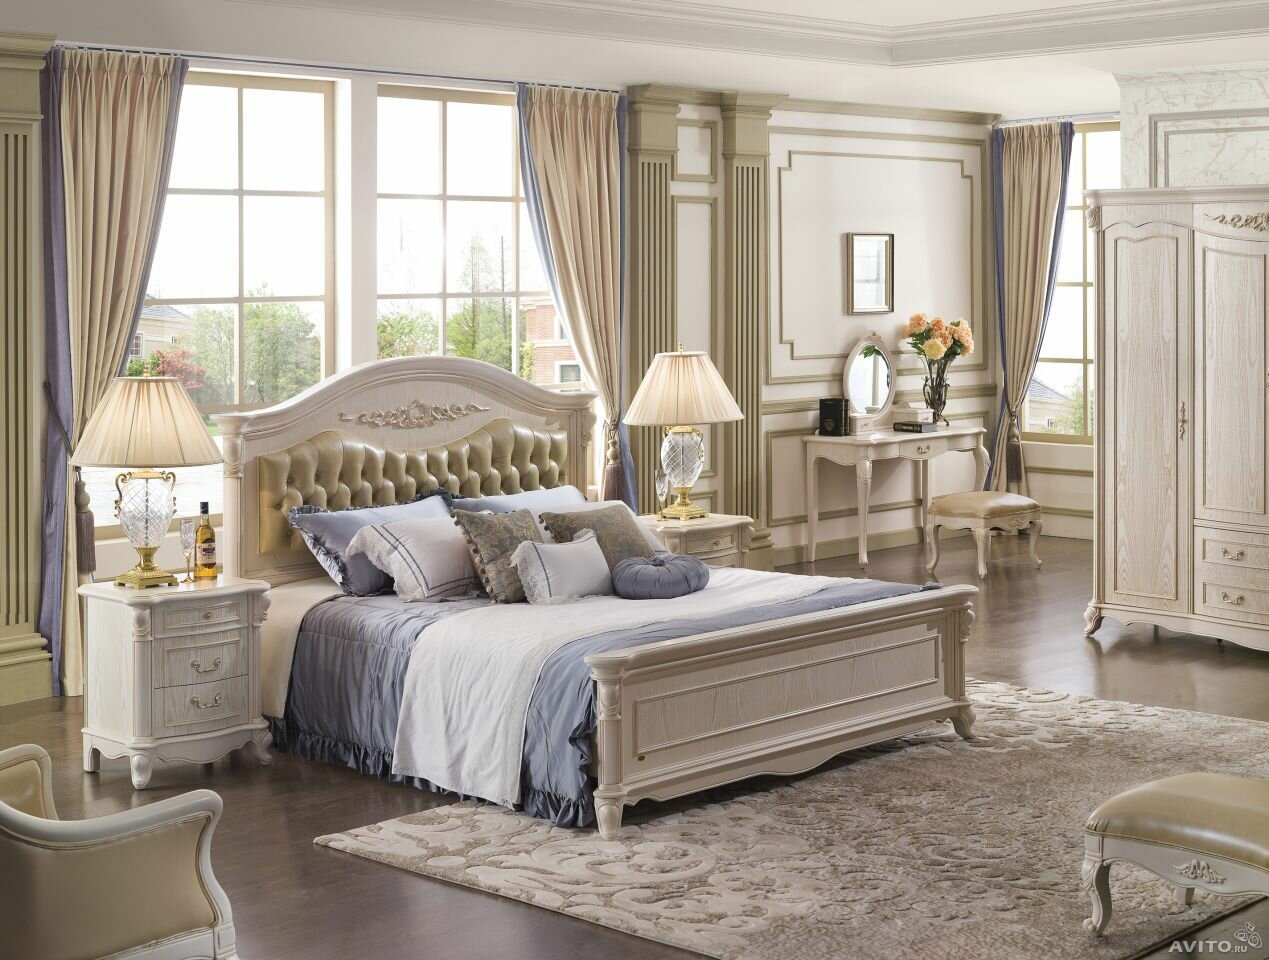 Gorgeous Bedrooms Extraordinary With World Most Beautiful Bedrooms Image